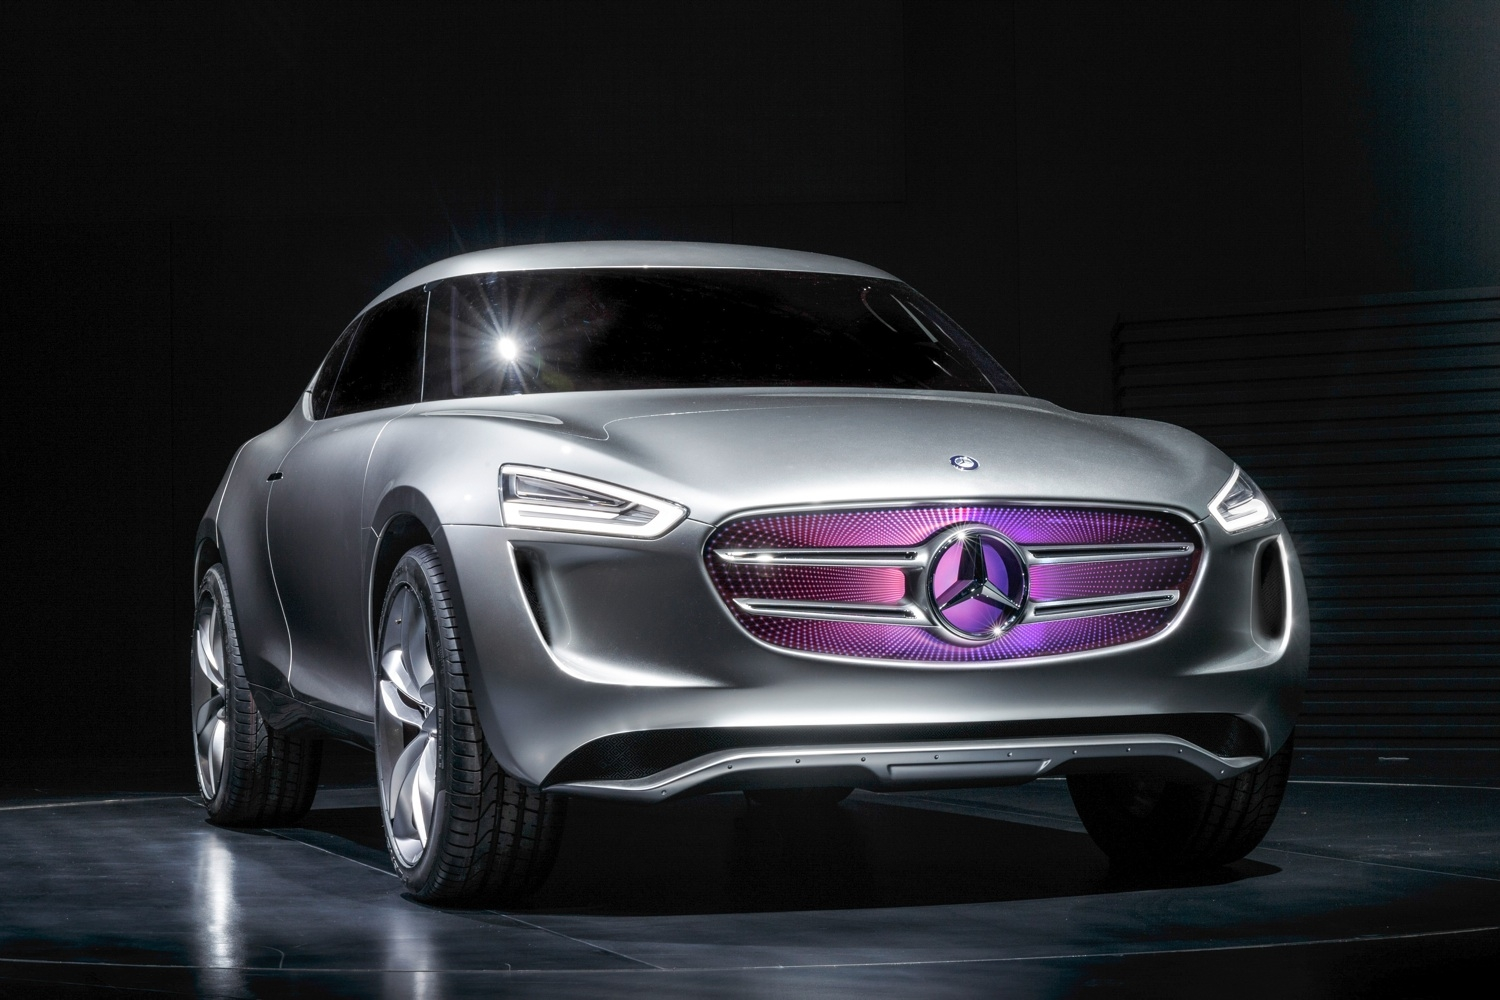 This Might Be The Most High Tech Mercedes Benz Ever!